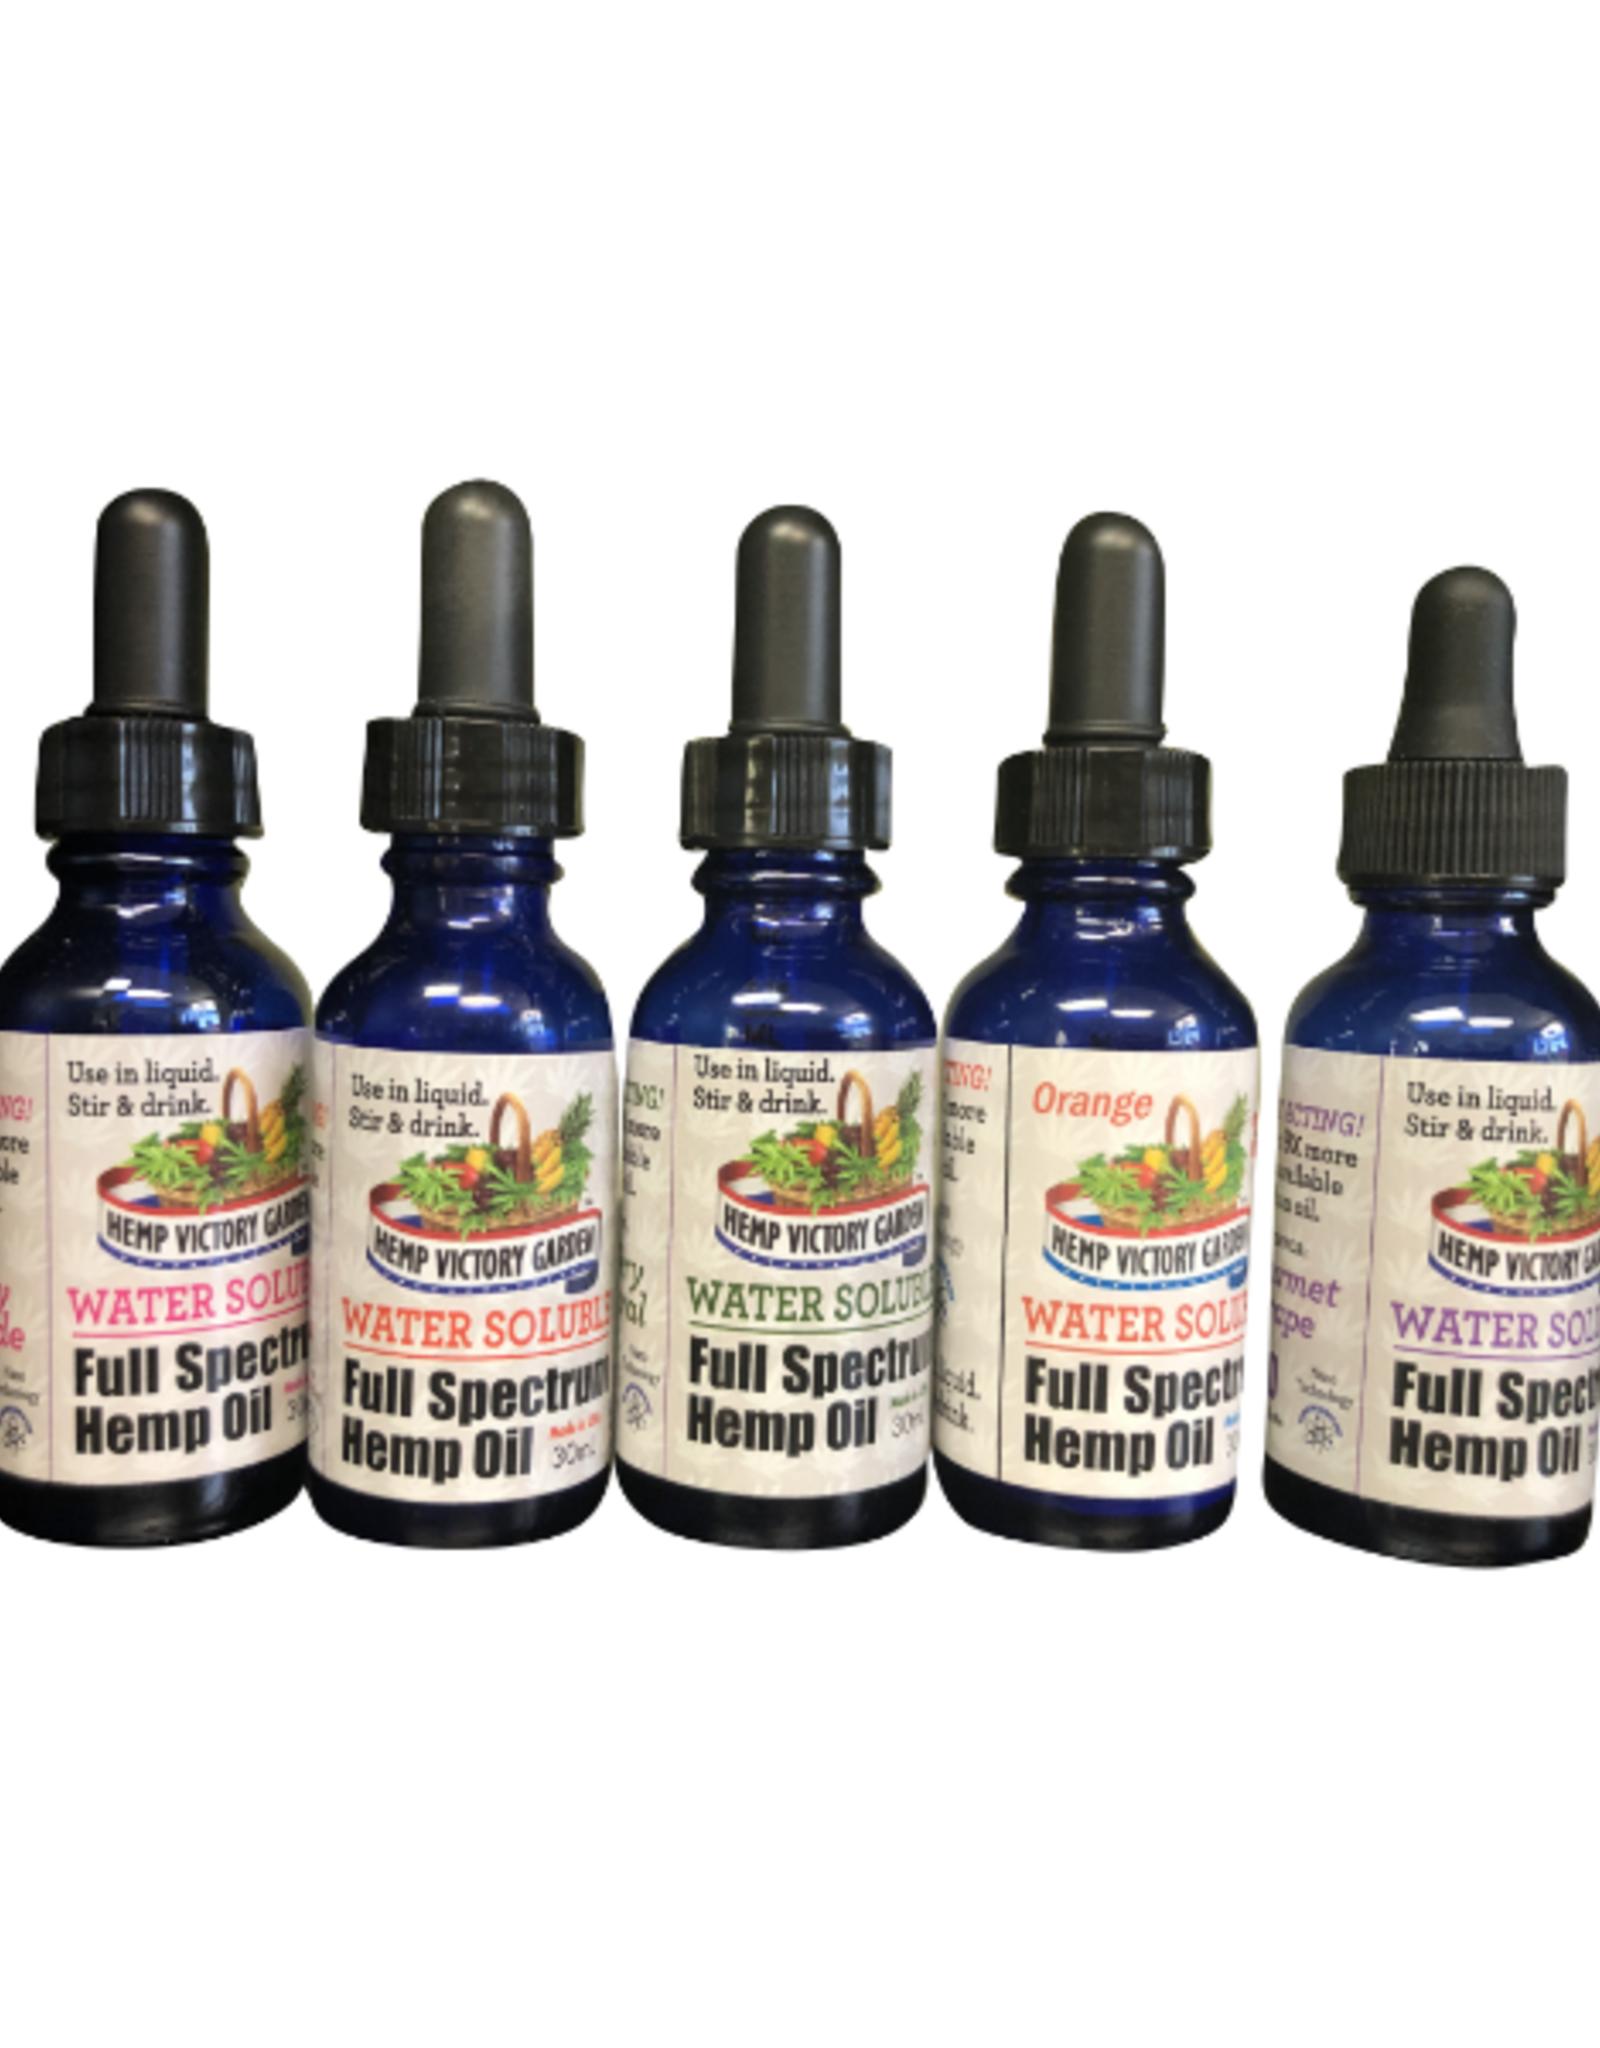 Hemp Victory Garden Water Soluble - Full Spectrum Hemp Oil